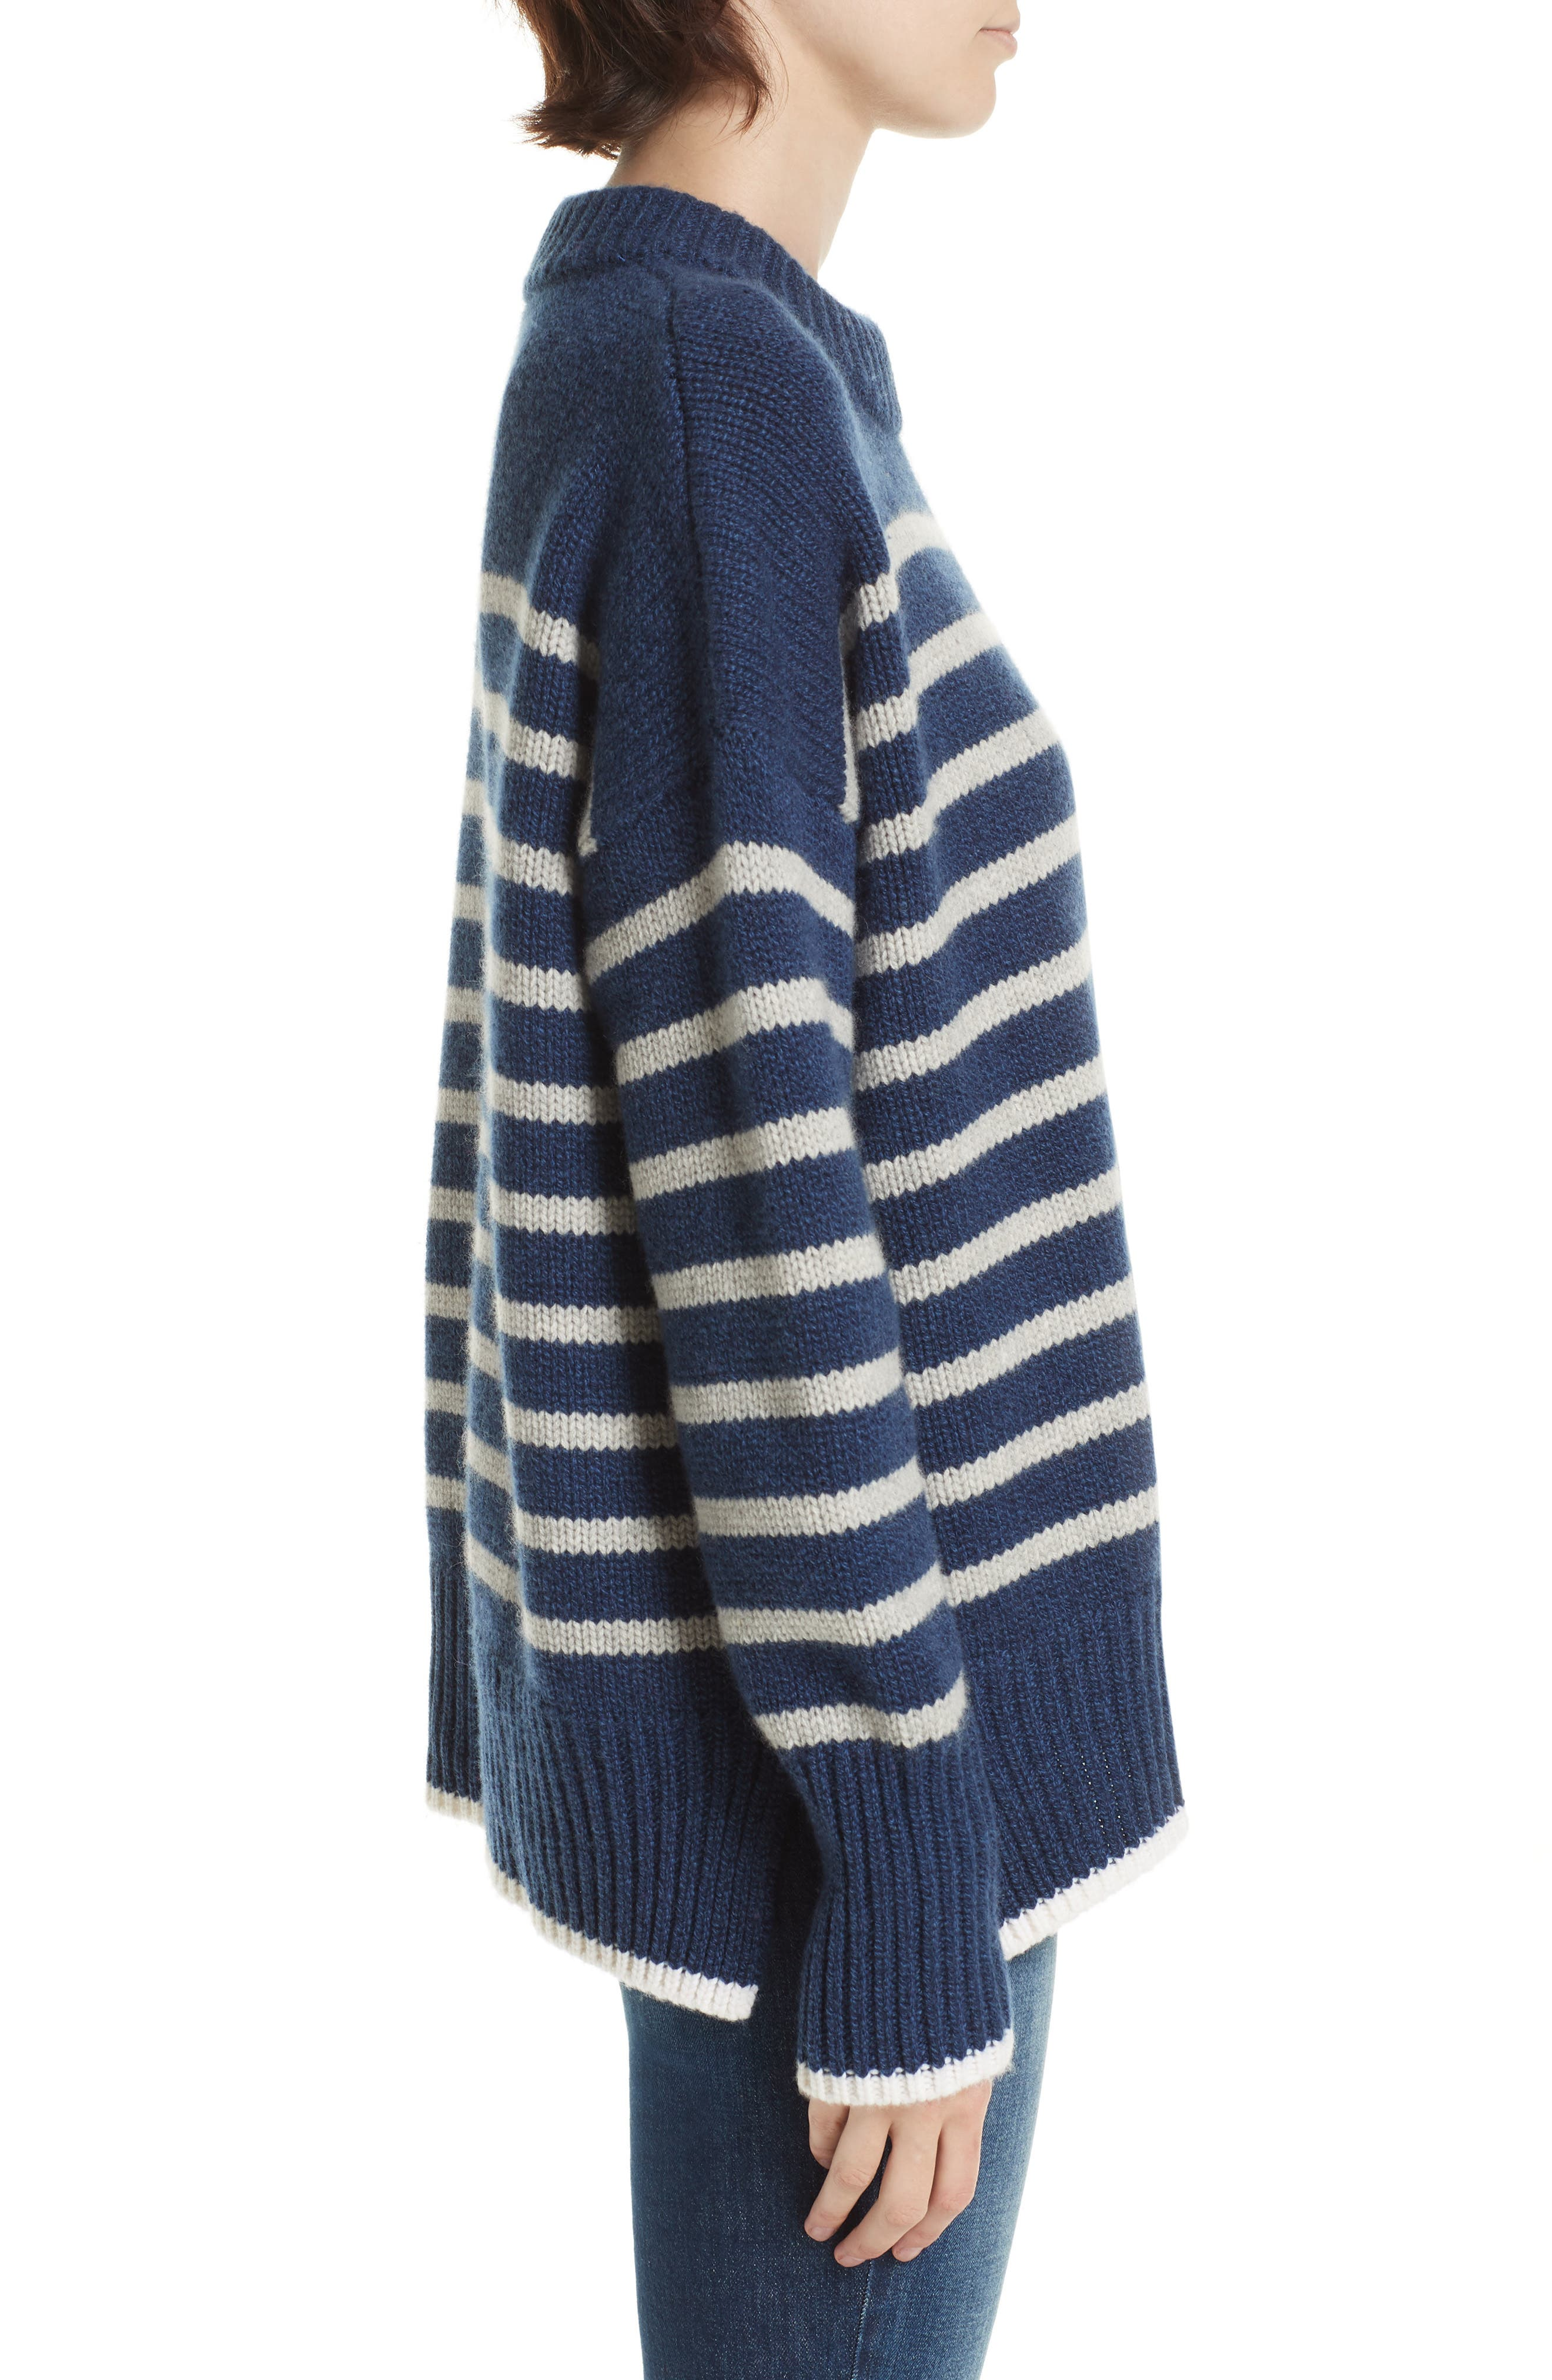 Marin Stripe Cashmere & Wool Sweater,                             Alternate thumbnail 3, color,                             BLUE MARLE/ GREY MARLE/ CREAM